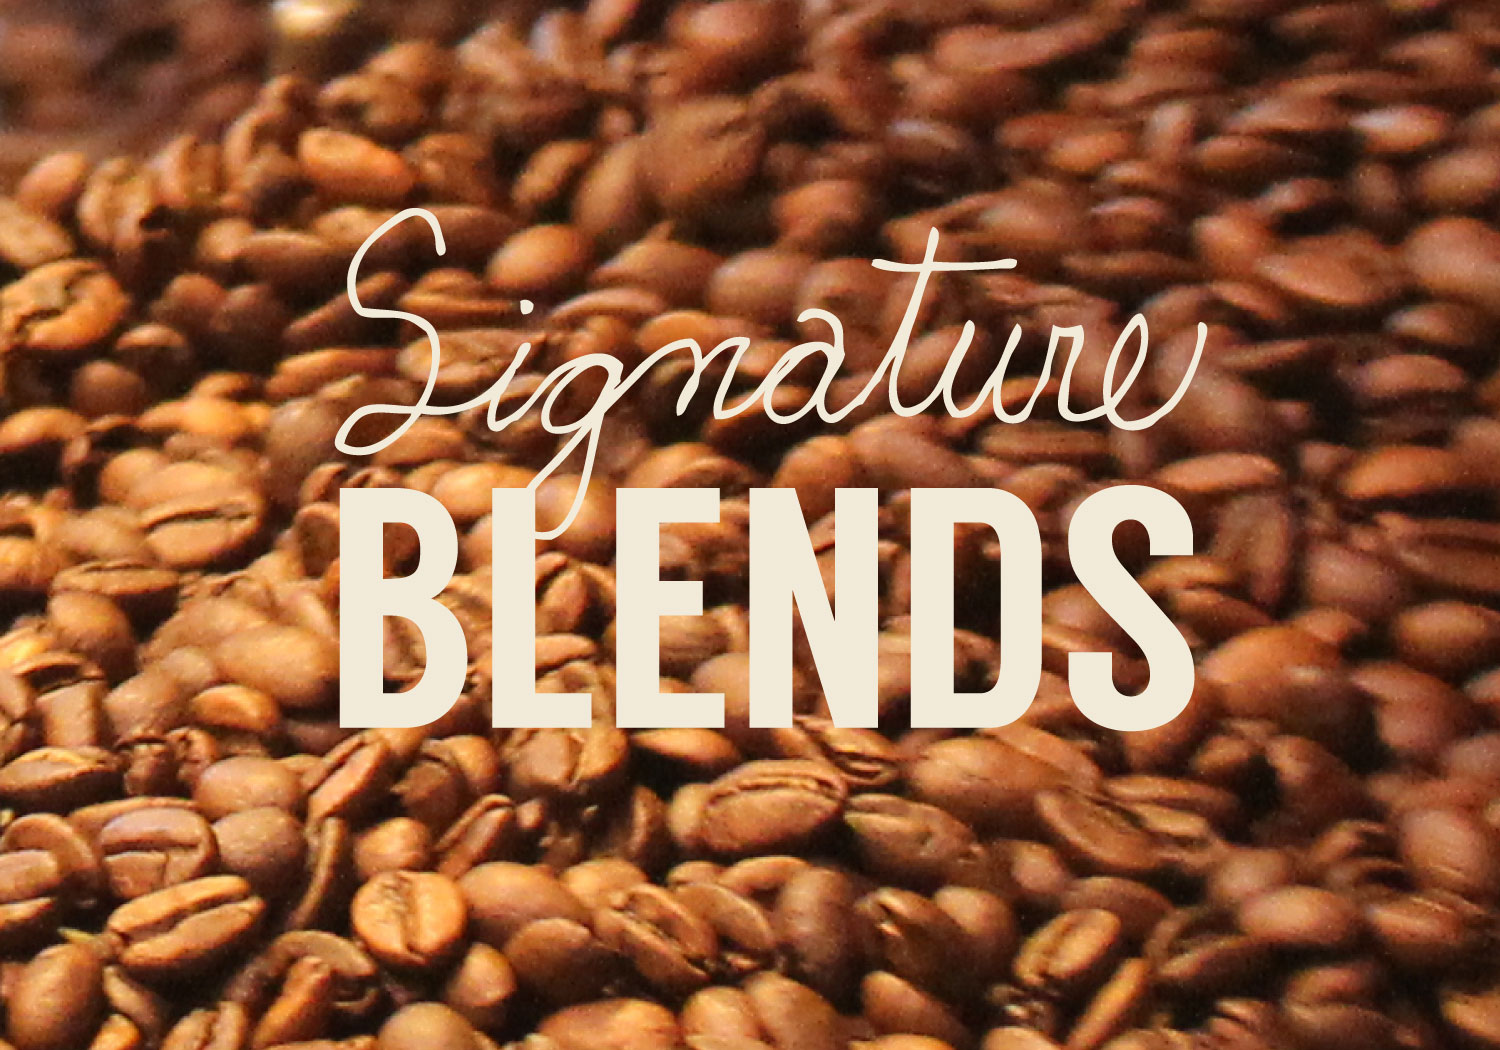 signature-blends-link.jpg